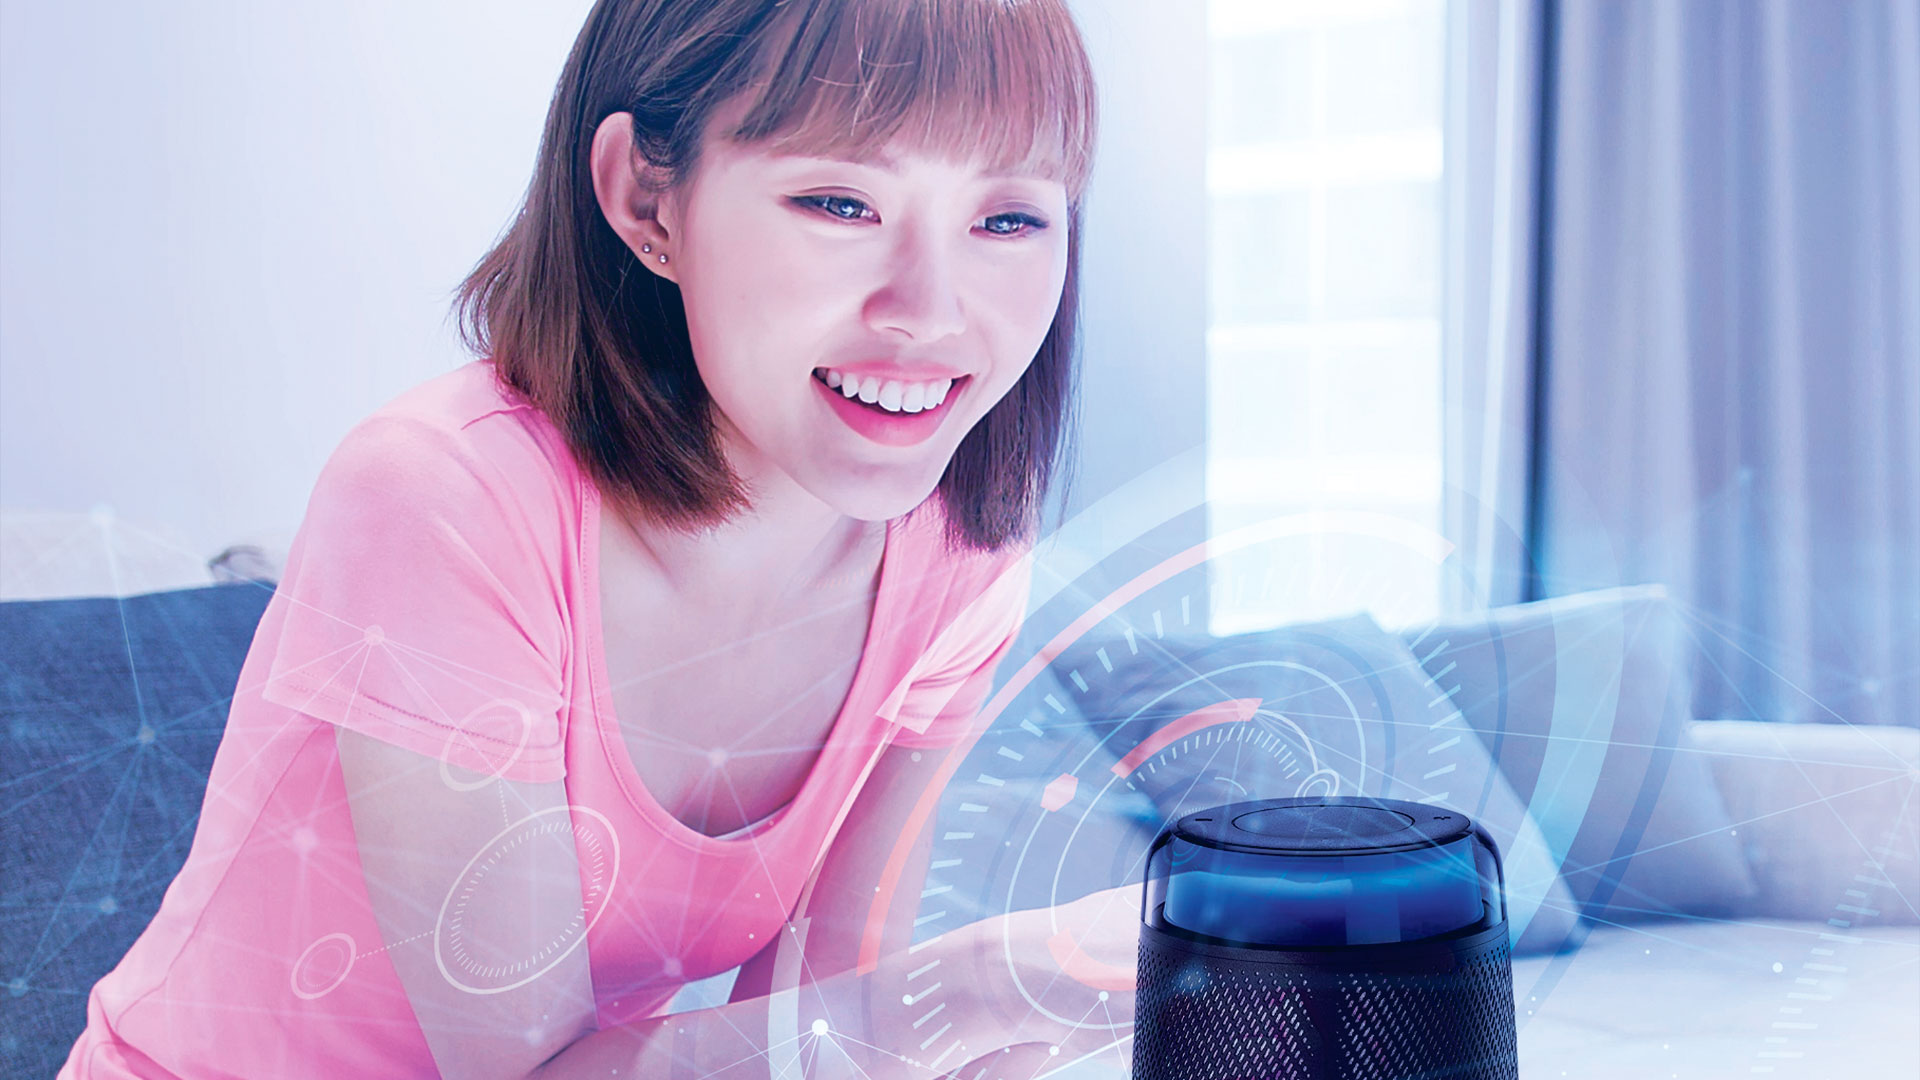 Rich User Experience - Lady talking to smart speaker